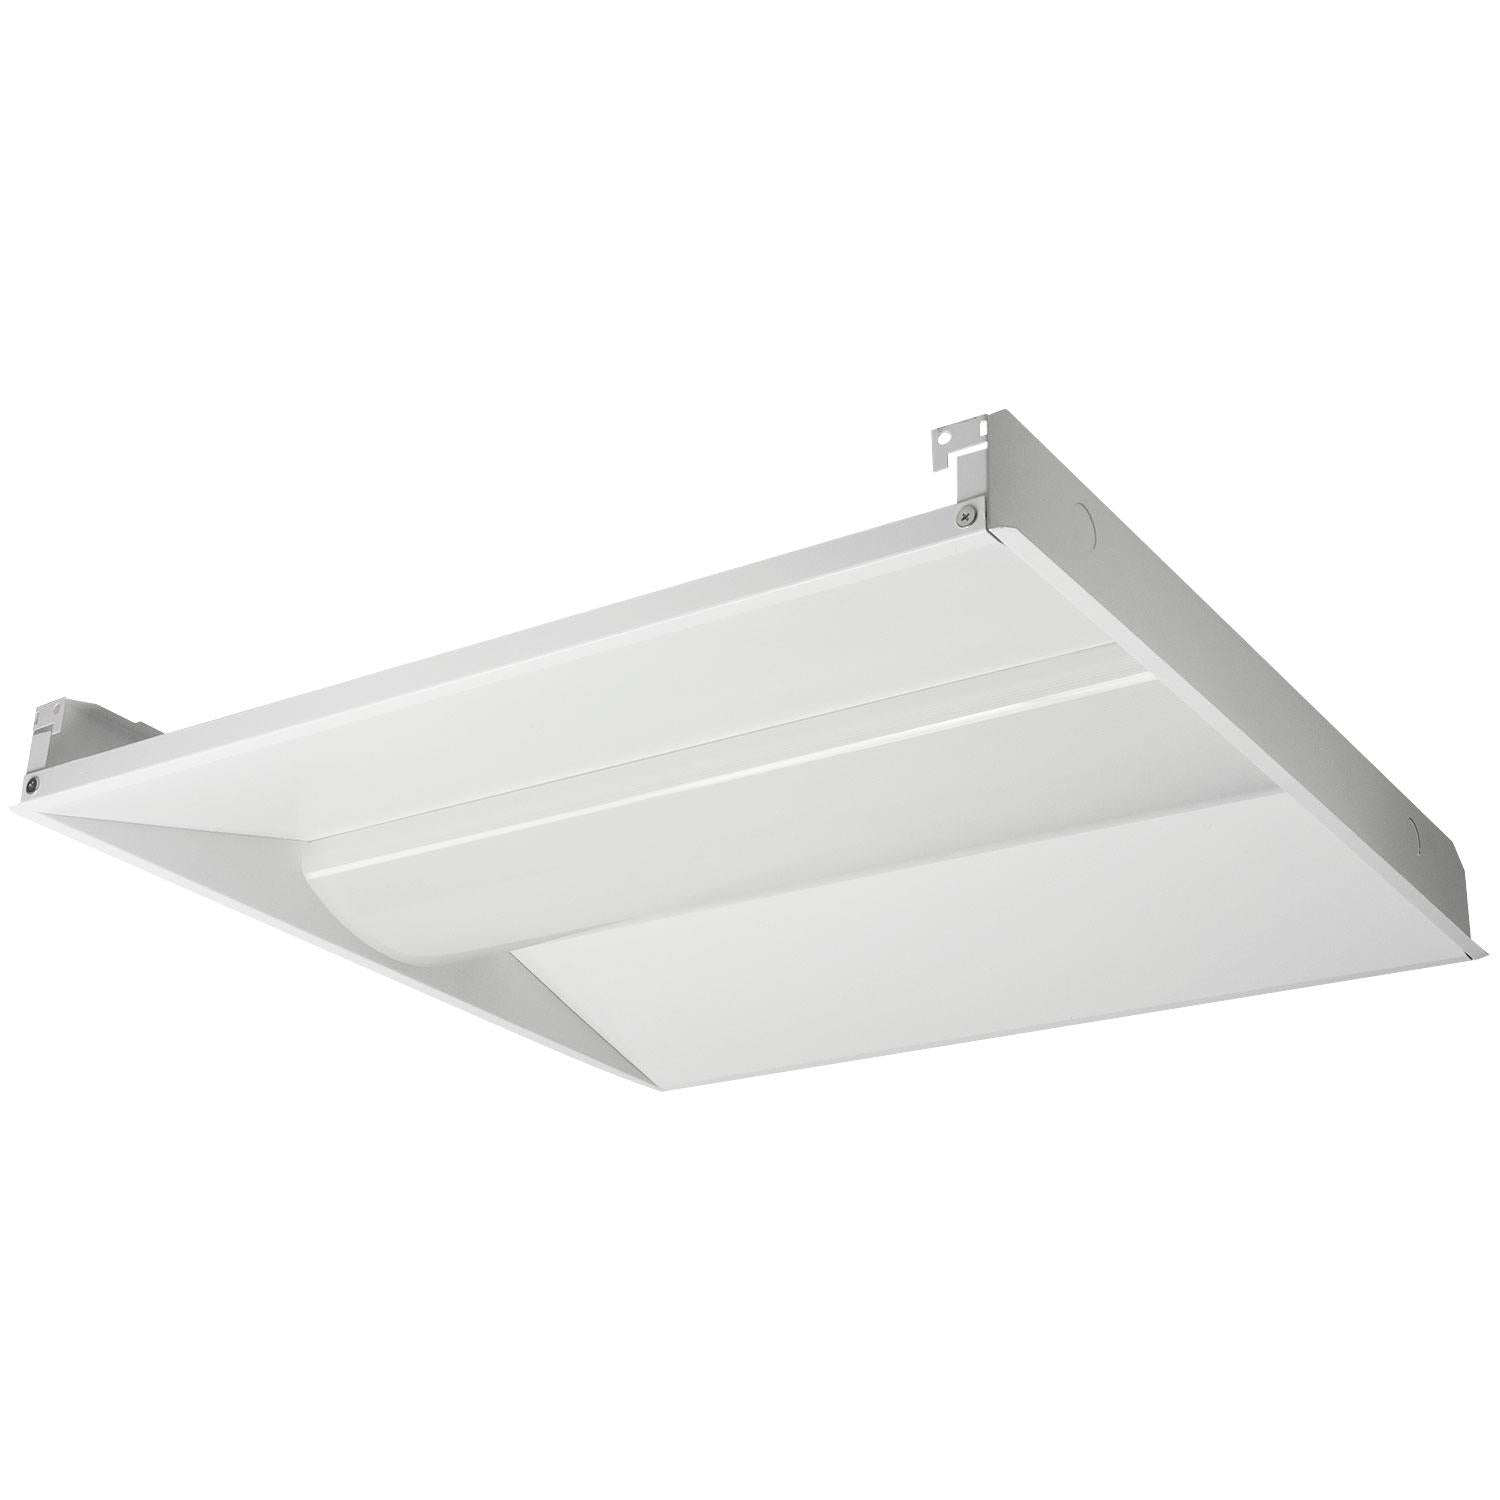 SUNLITE LED Troffer Neutral White 3500K 30W 120-277V - Dimmable